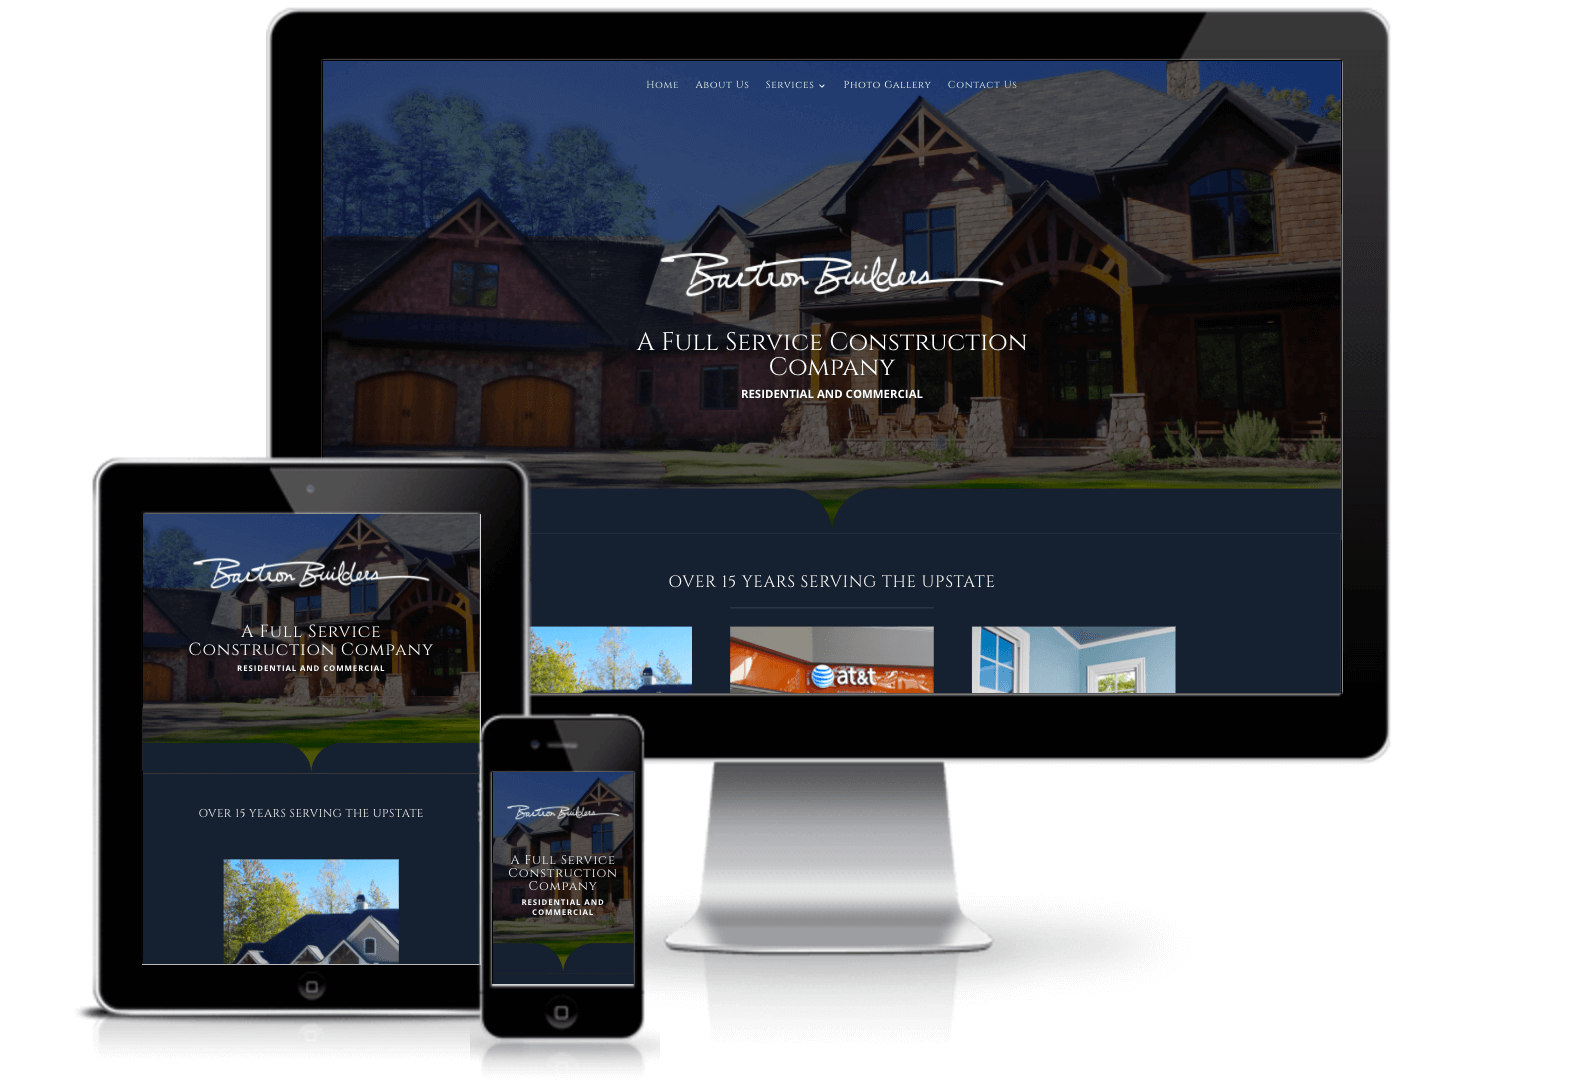 bartron builders custom website design